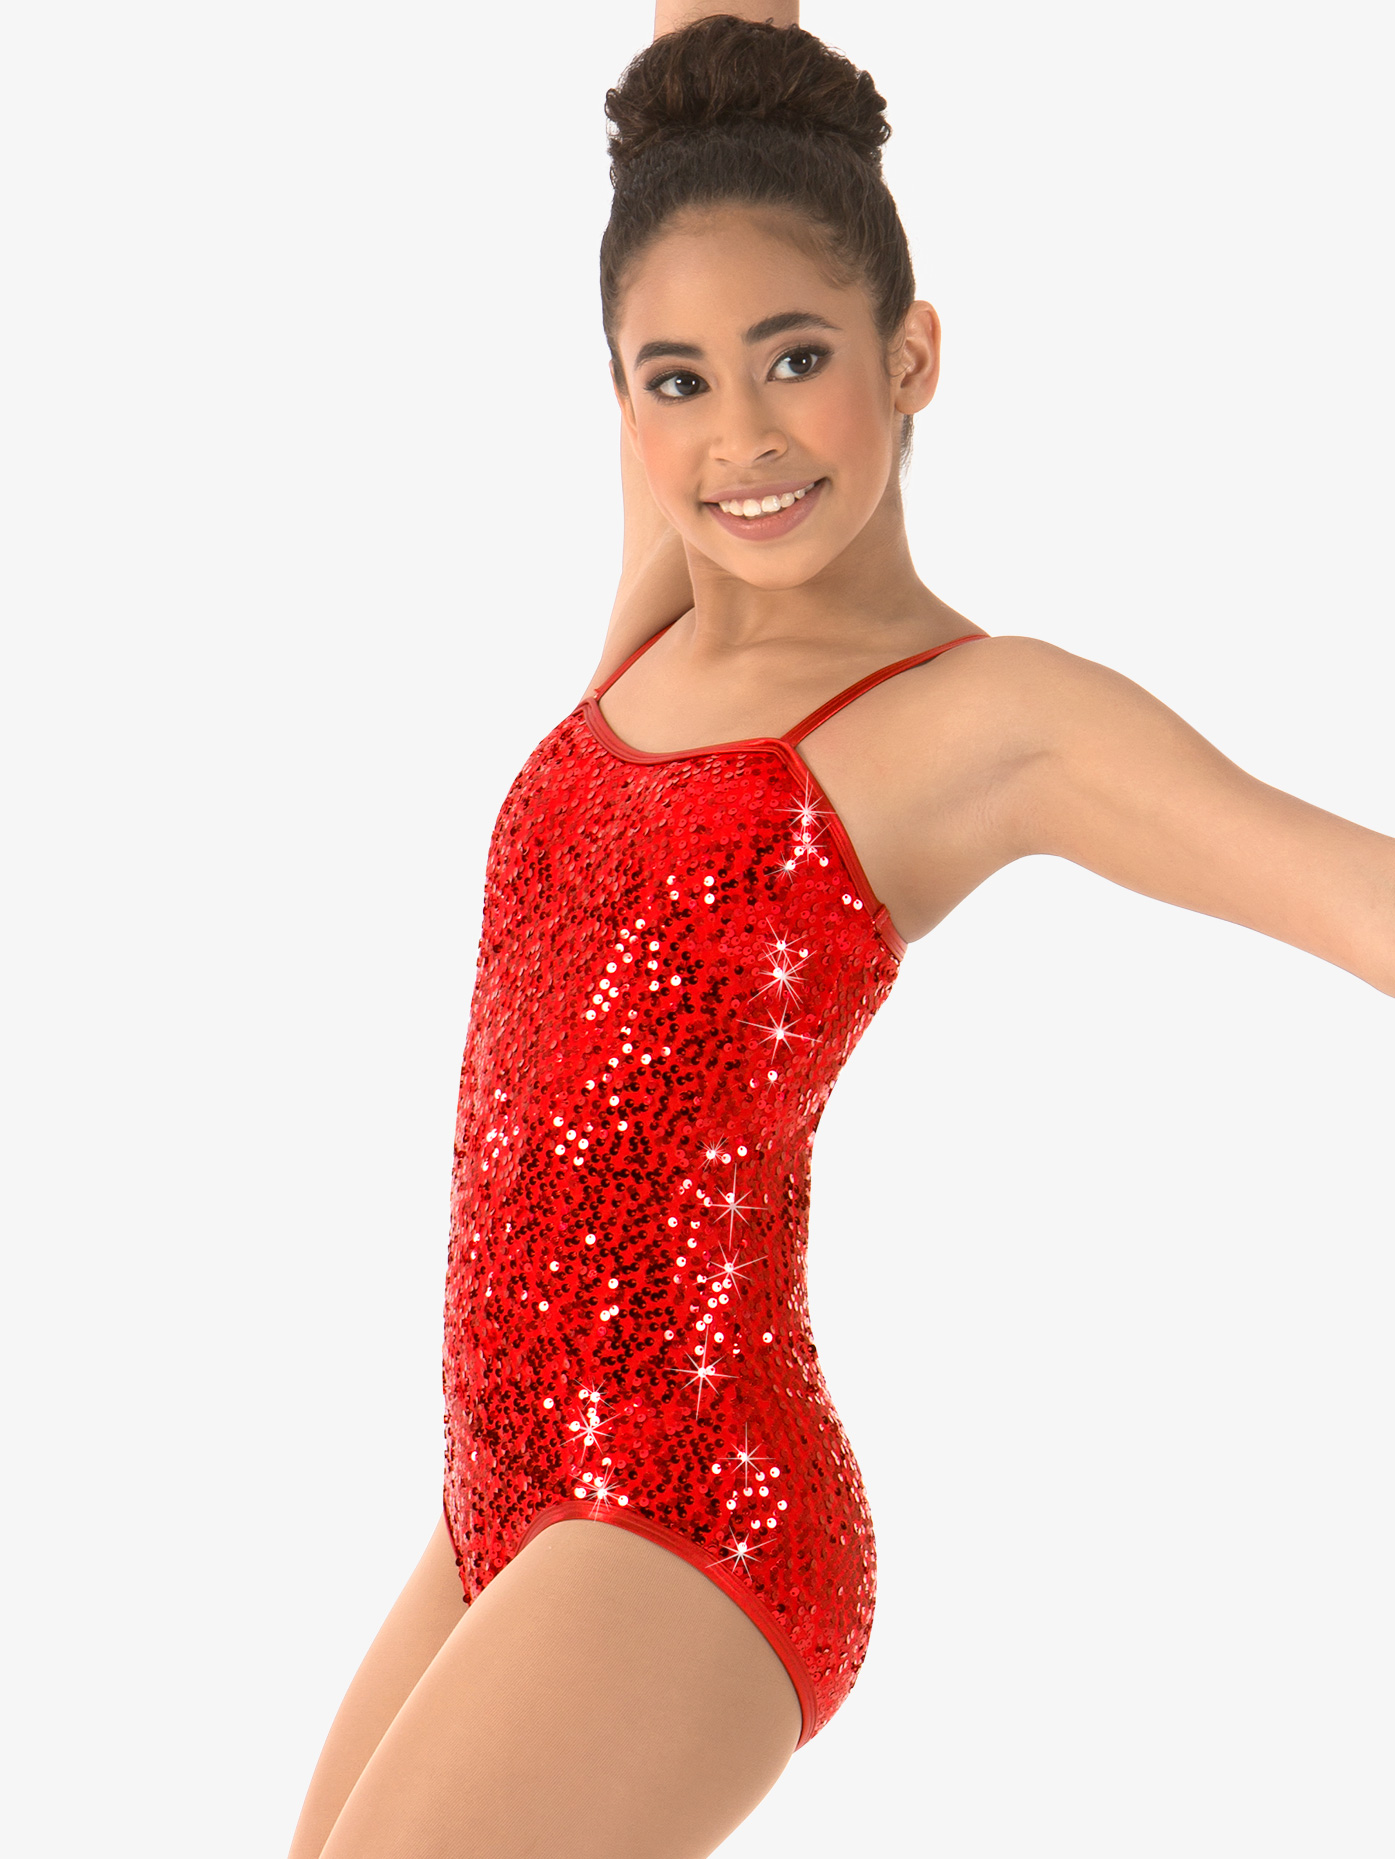 Double Platinum Girls Sequin Camisole Leotard N7309C